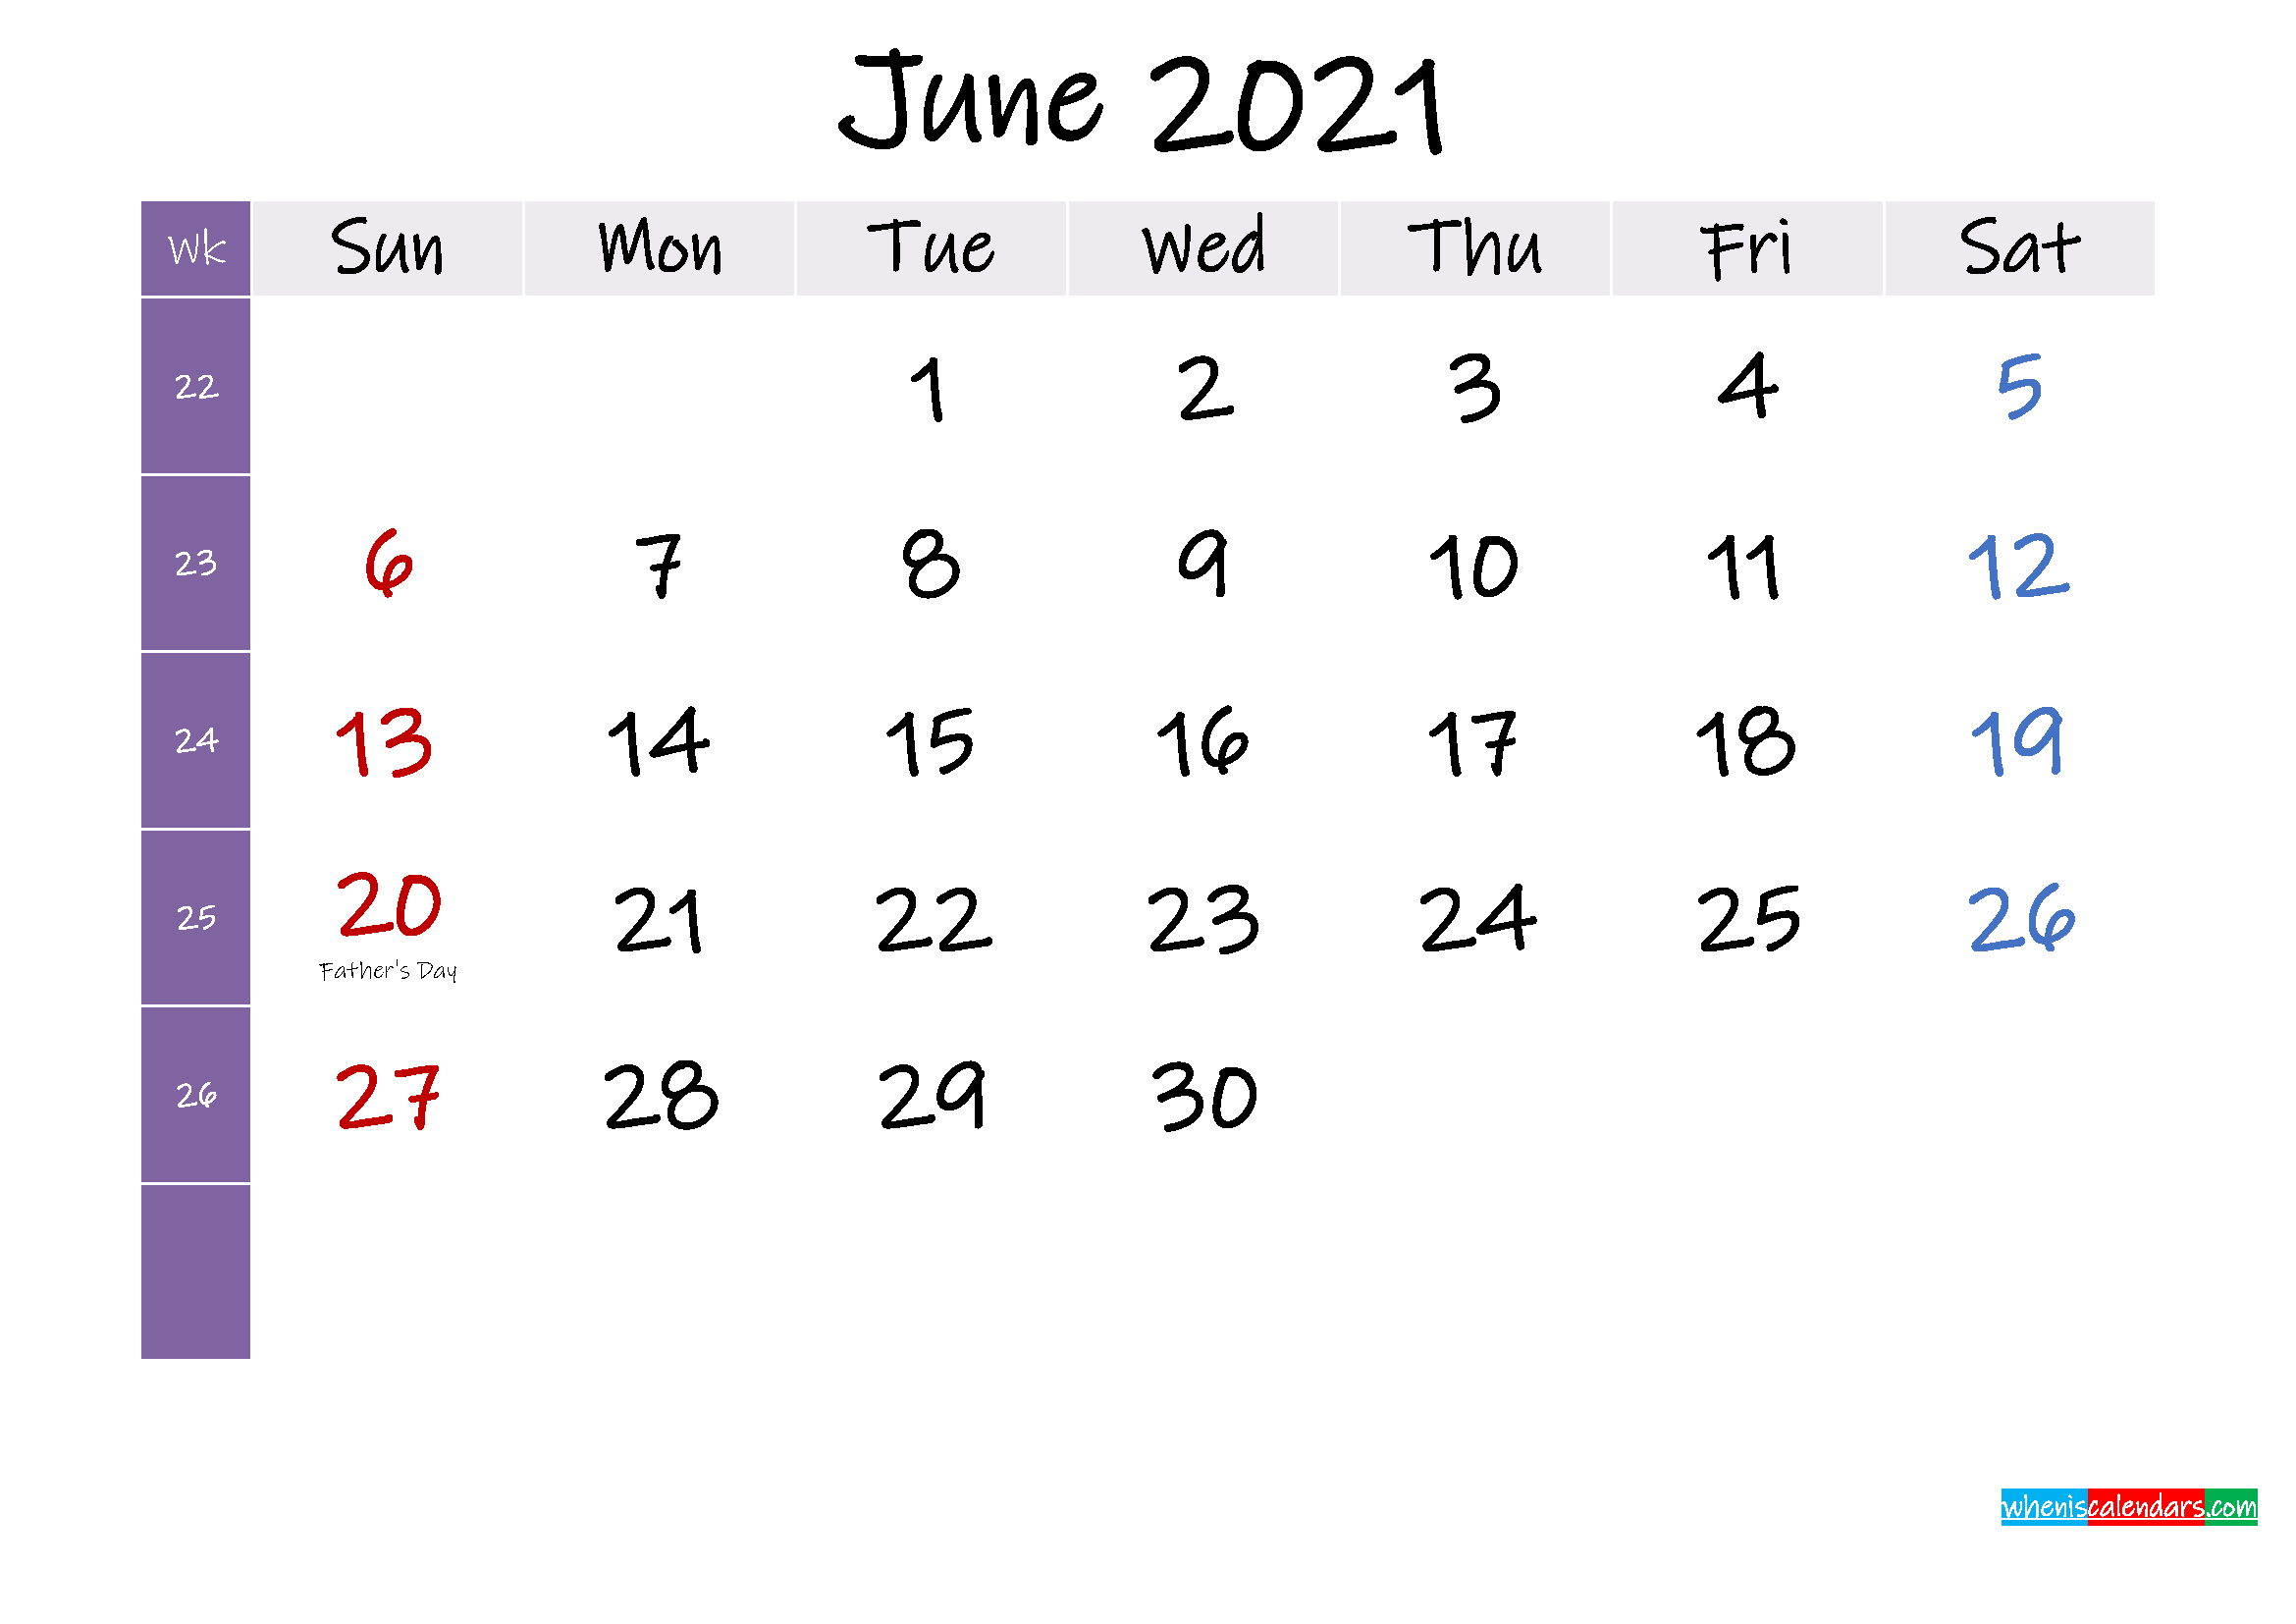 June 2021 Free Printable Calendar with Holidays